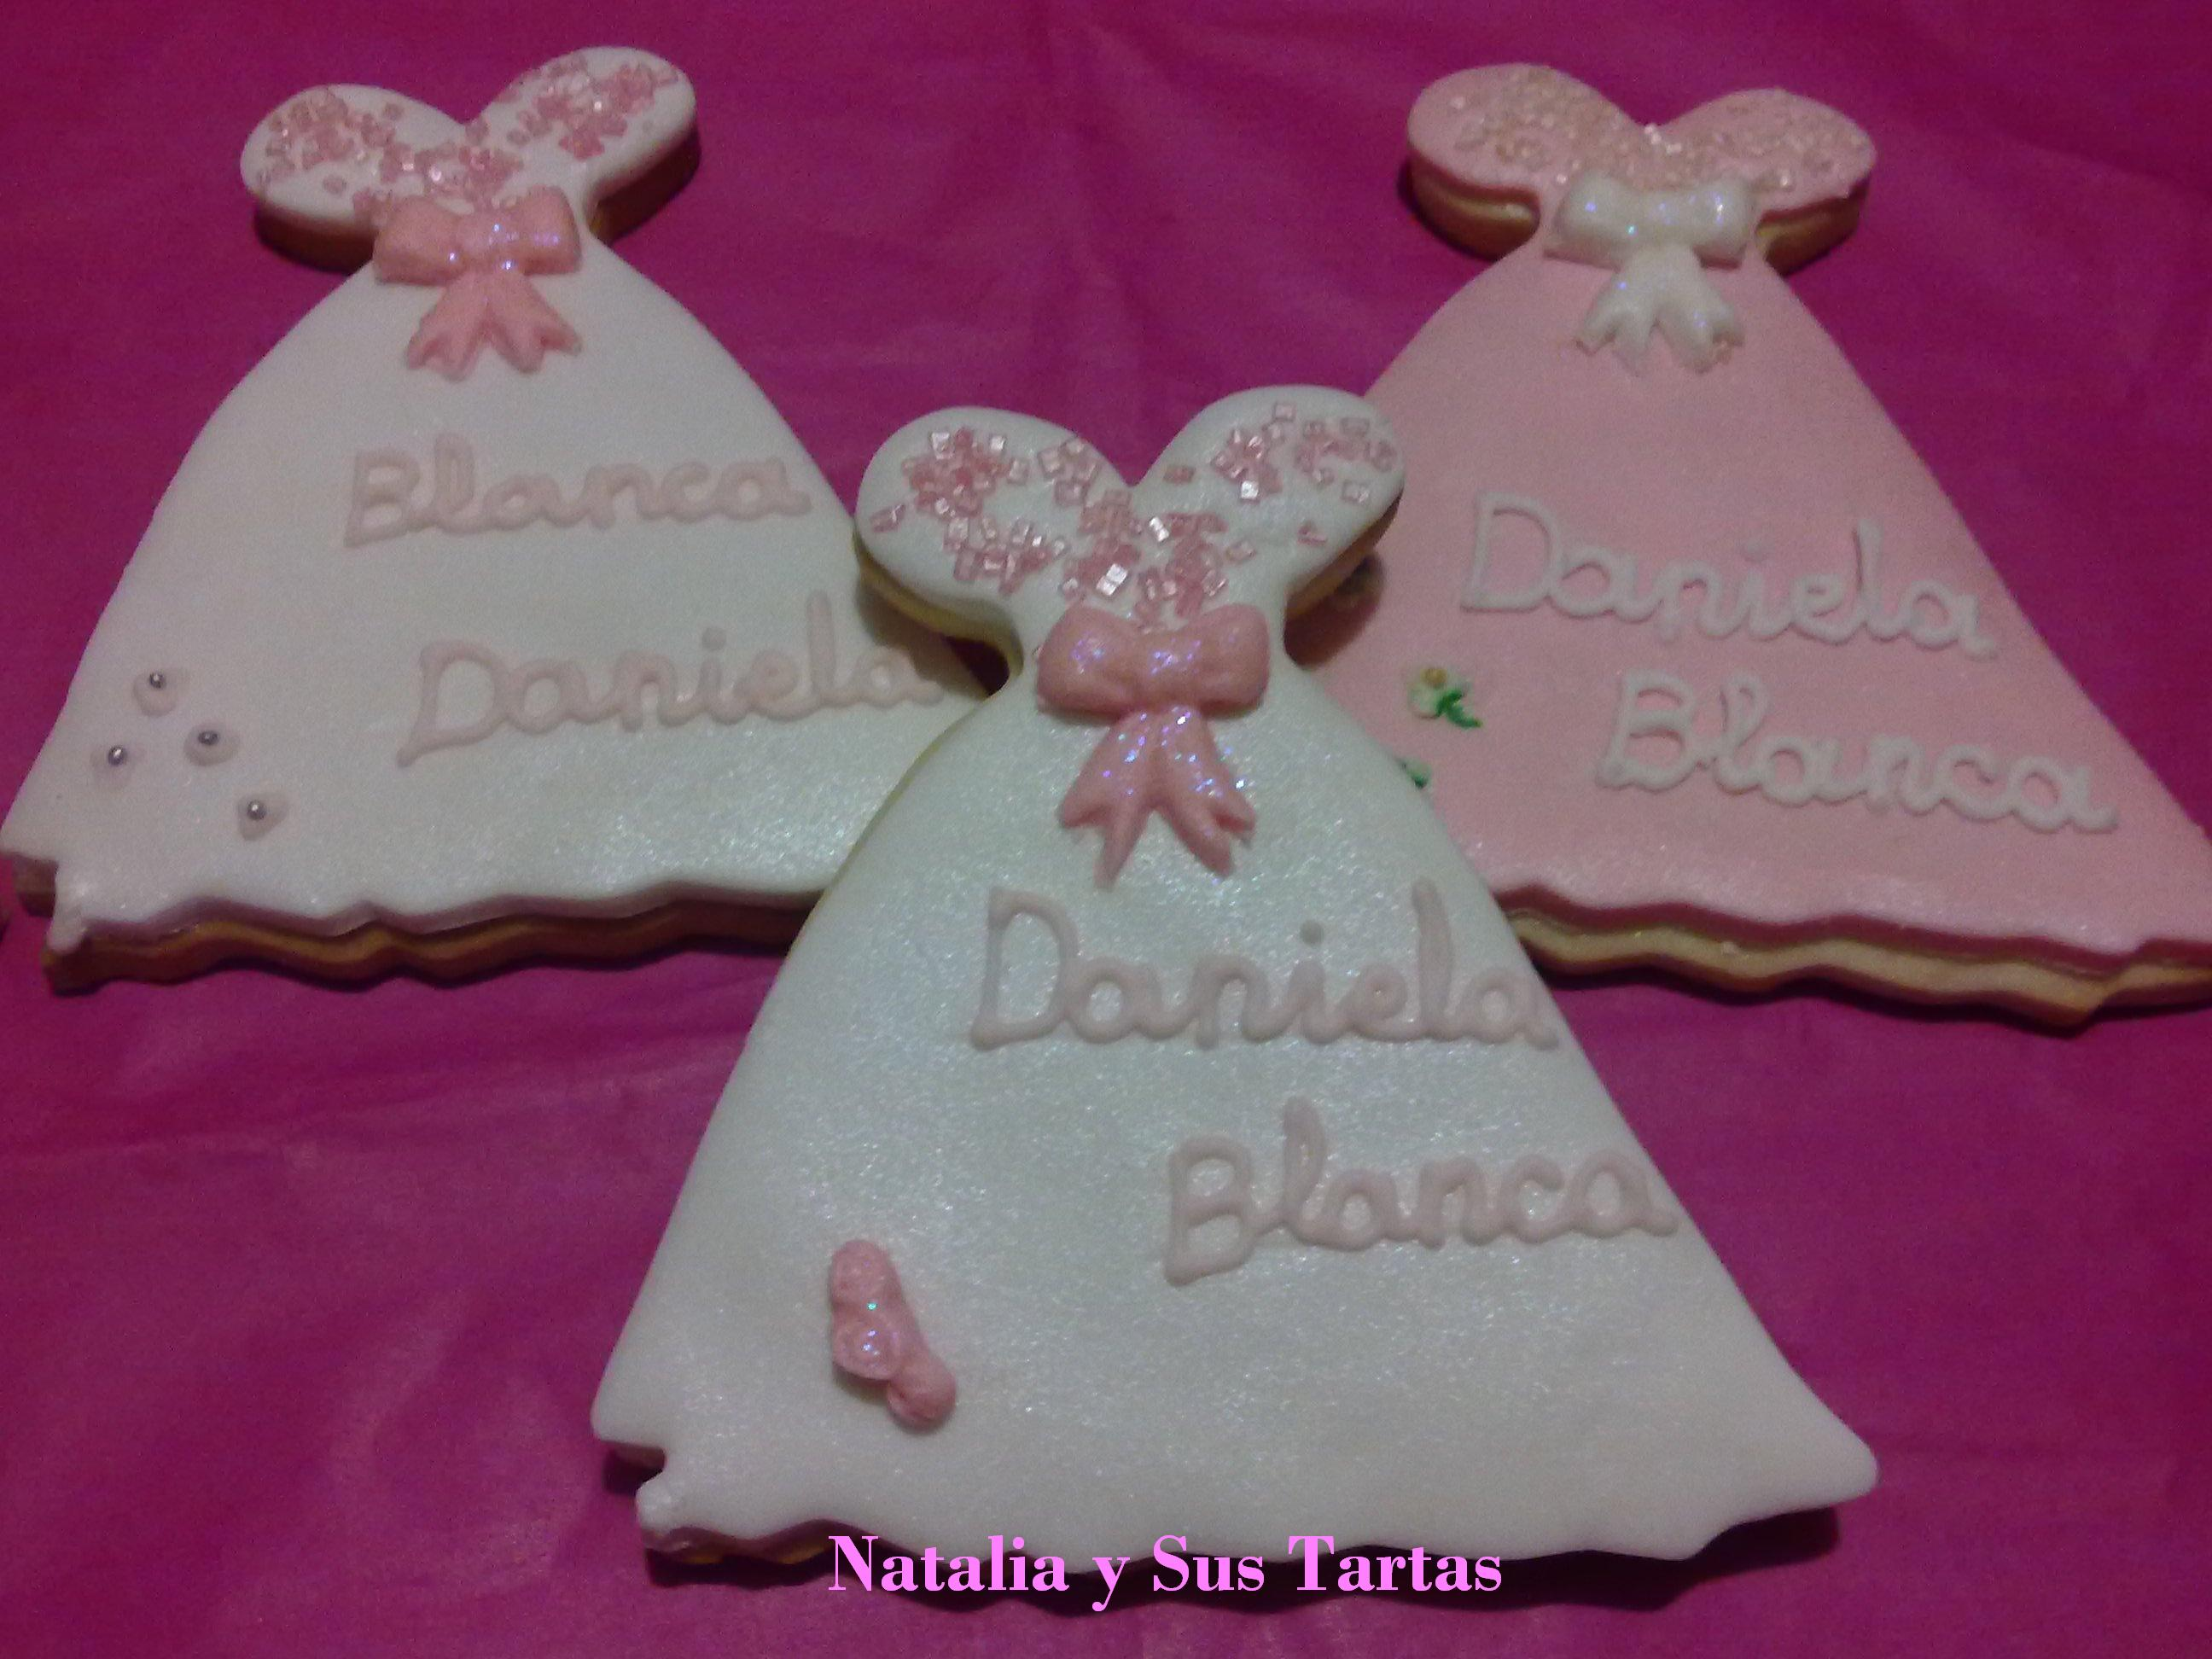 Galletas Decoradas De Princesas Galletas Decoradas Vestido De Princesa Natalia Y Sus Tartas